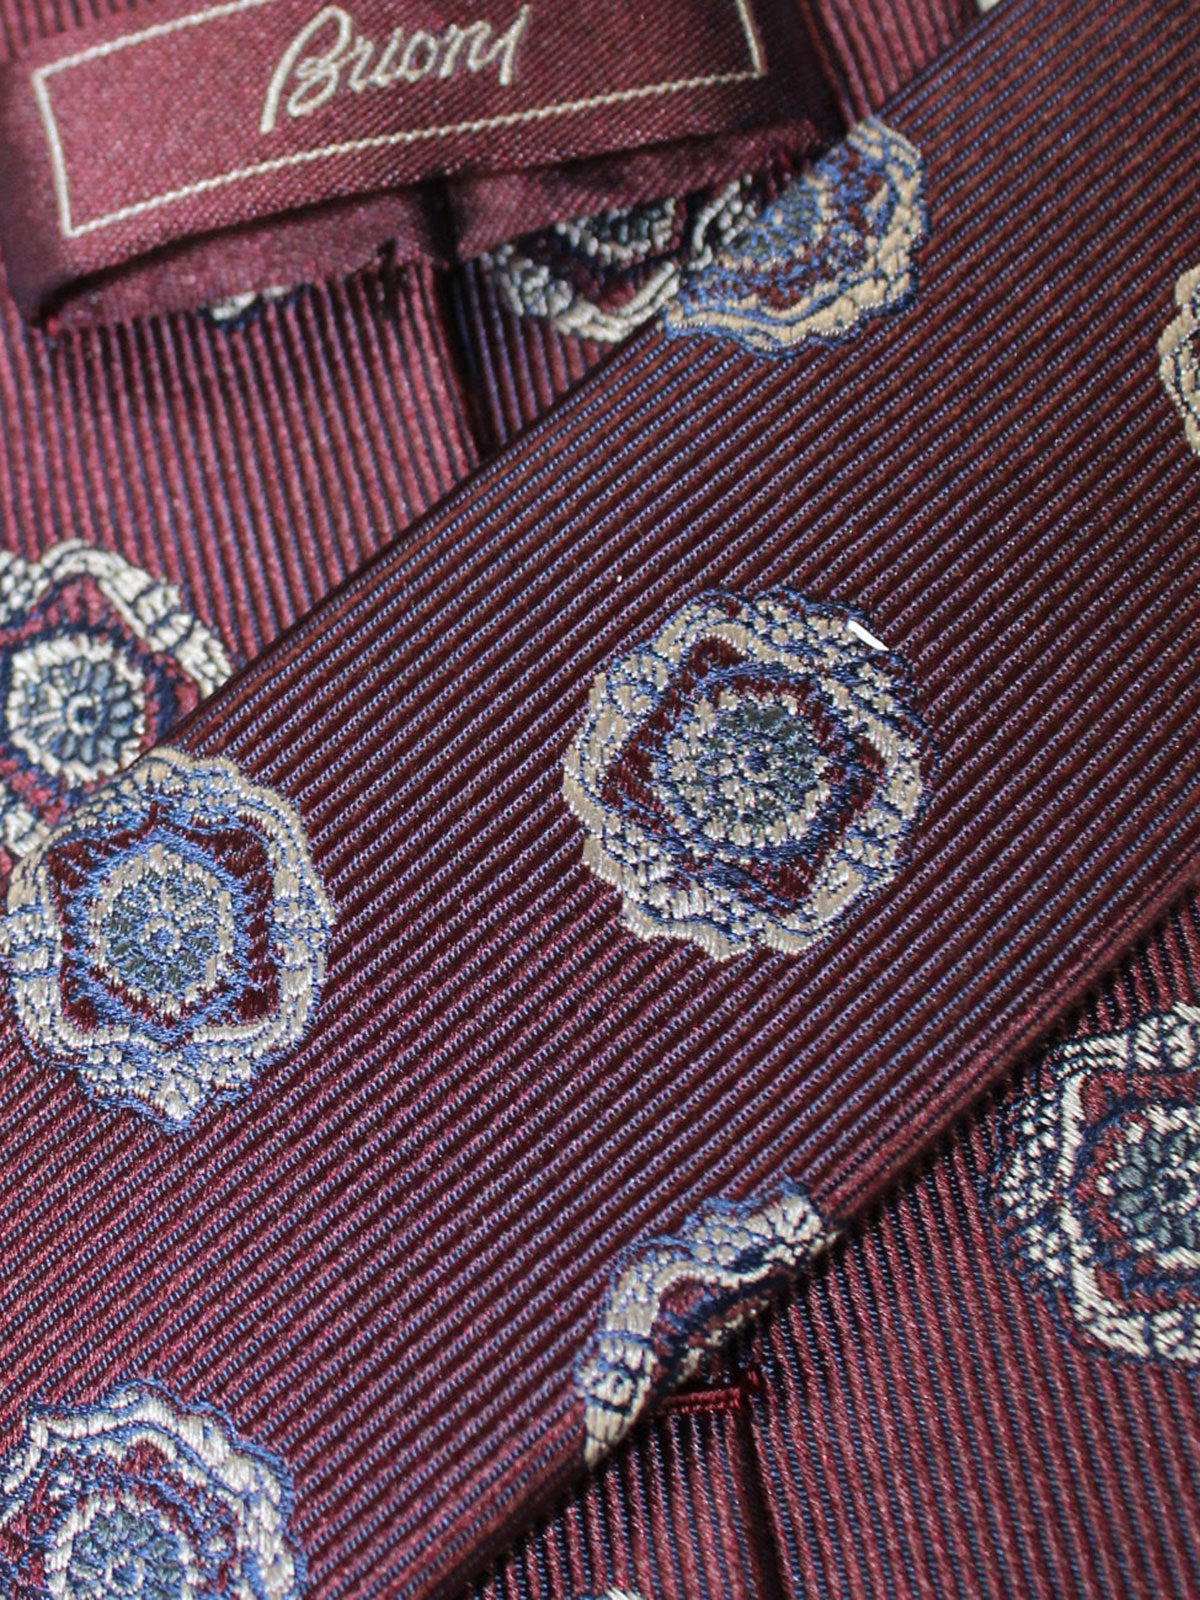 Brioni Silk Tie Brown Medallions Design